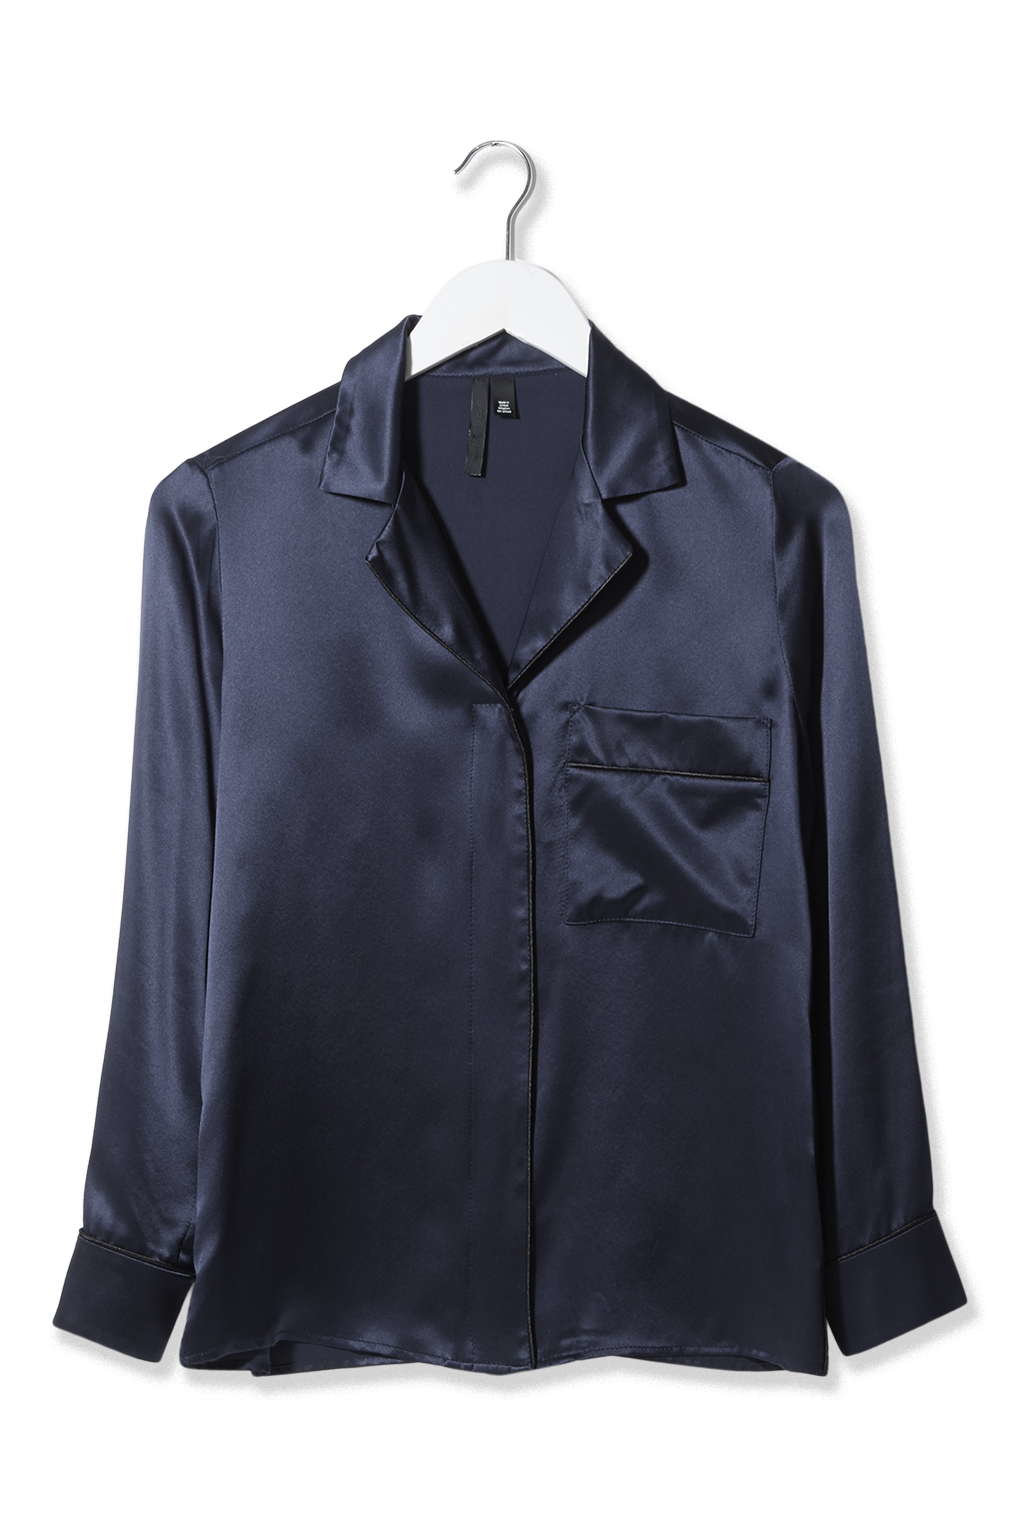 90bb645971 TOPSHOP Pyjama-style Satin Shirt By Boutique in Blue - Lyst